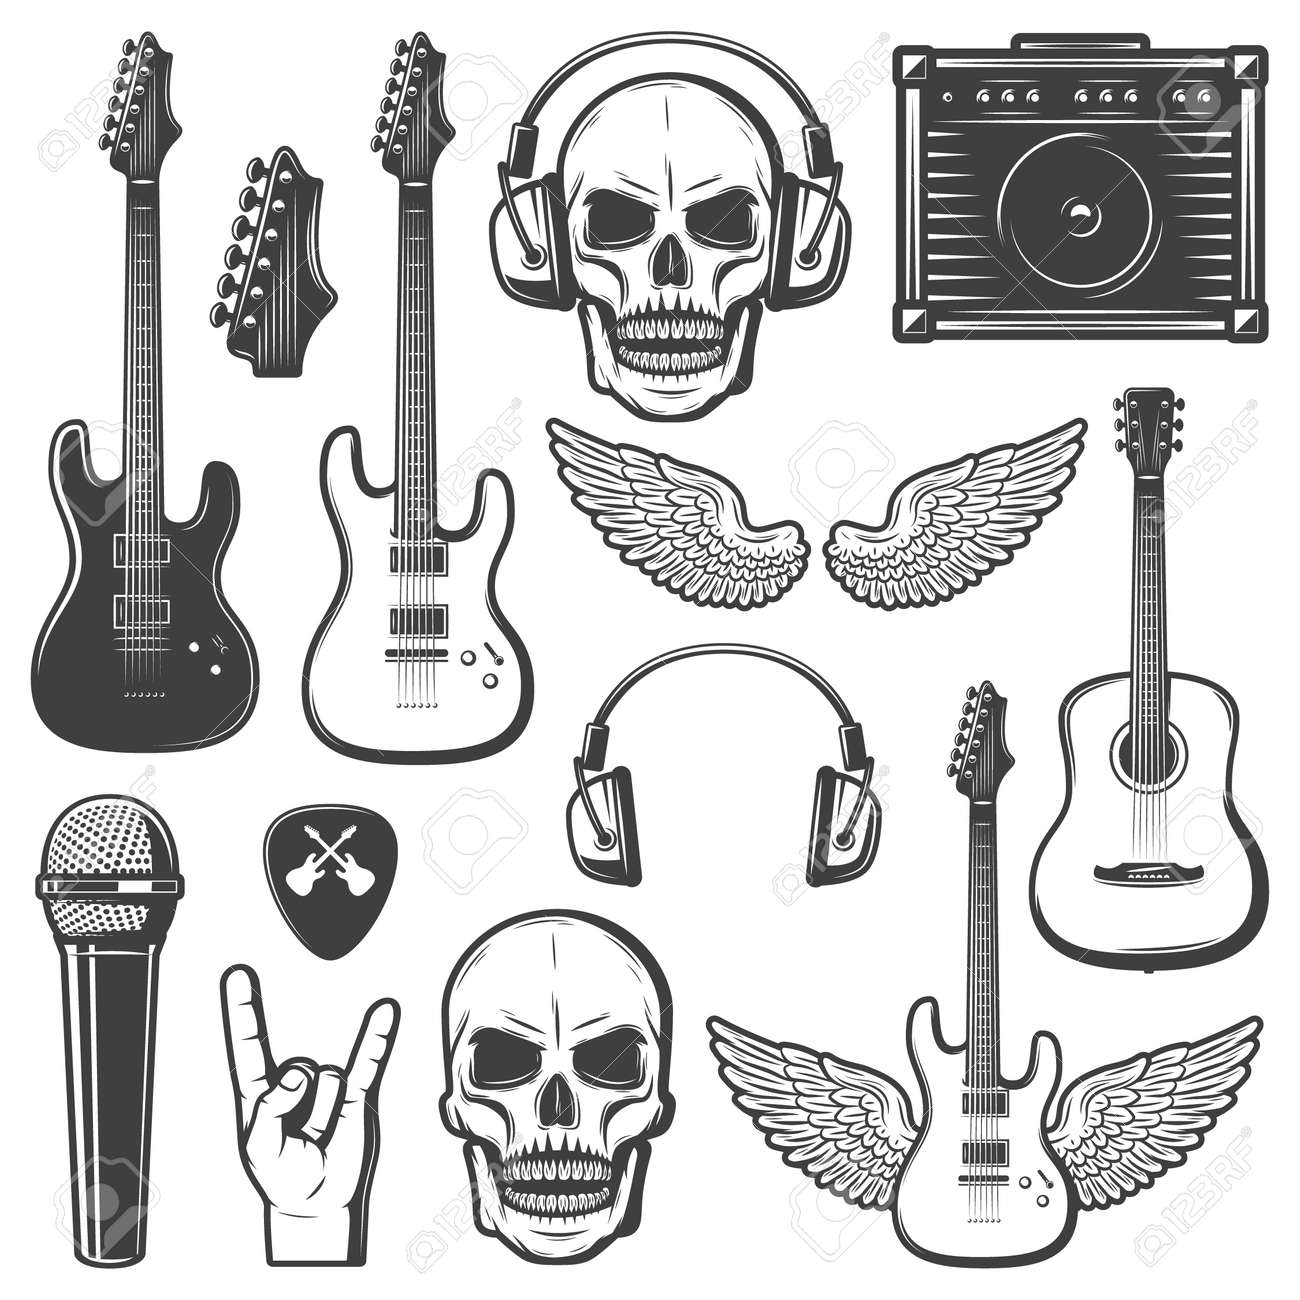 Vintage rock music elements set with guitars skull amplifier headphone mediator wings microphone hand gesture isolated vector illustration - 166588991